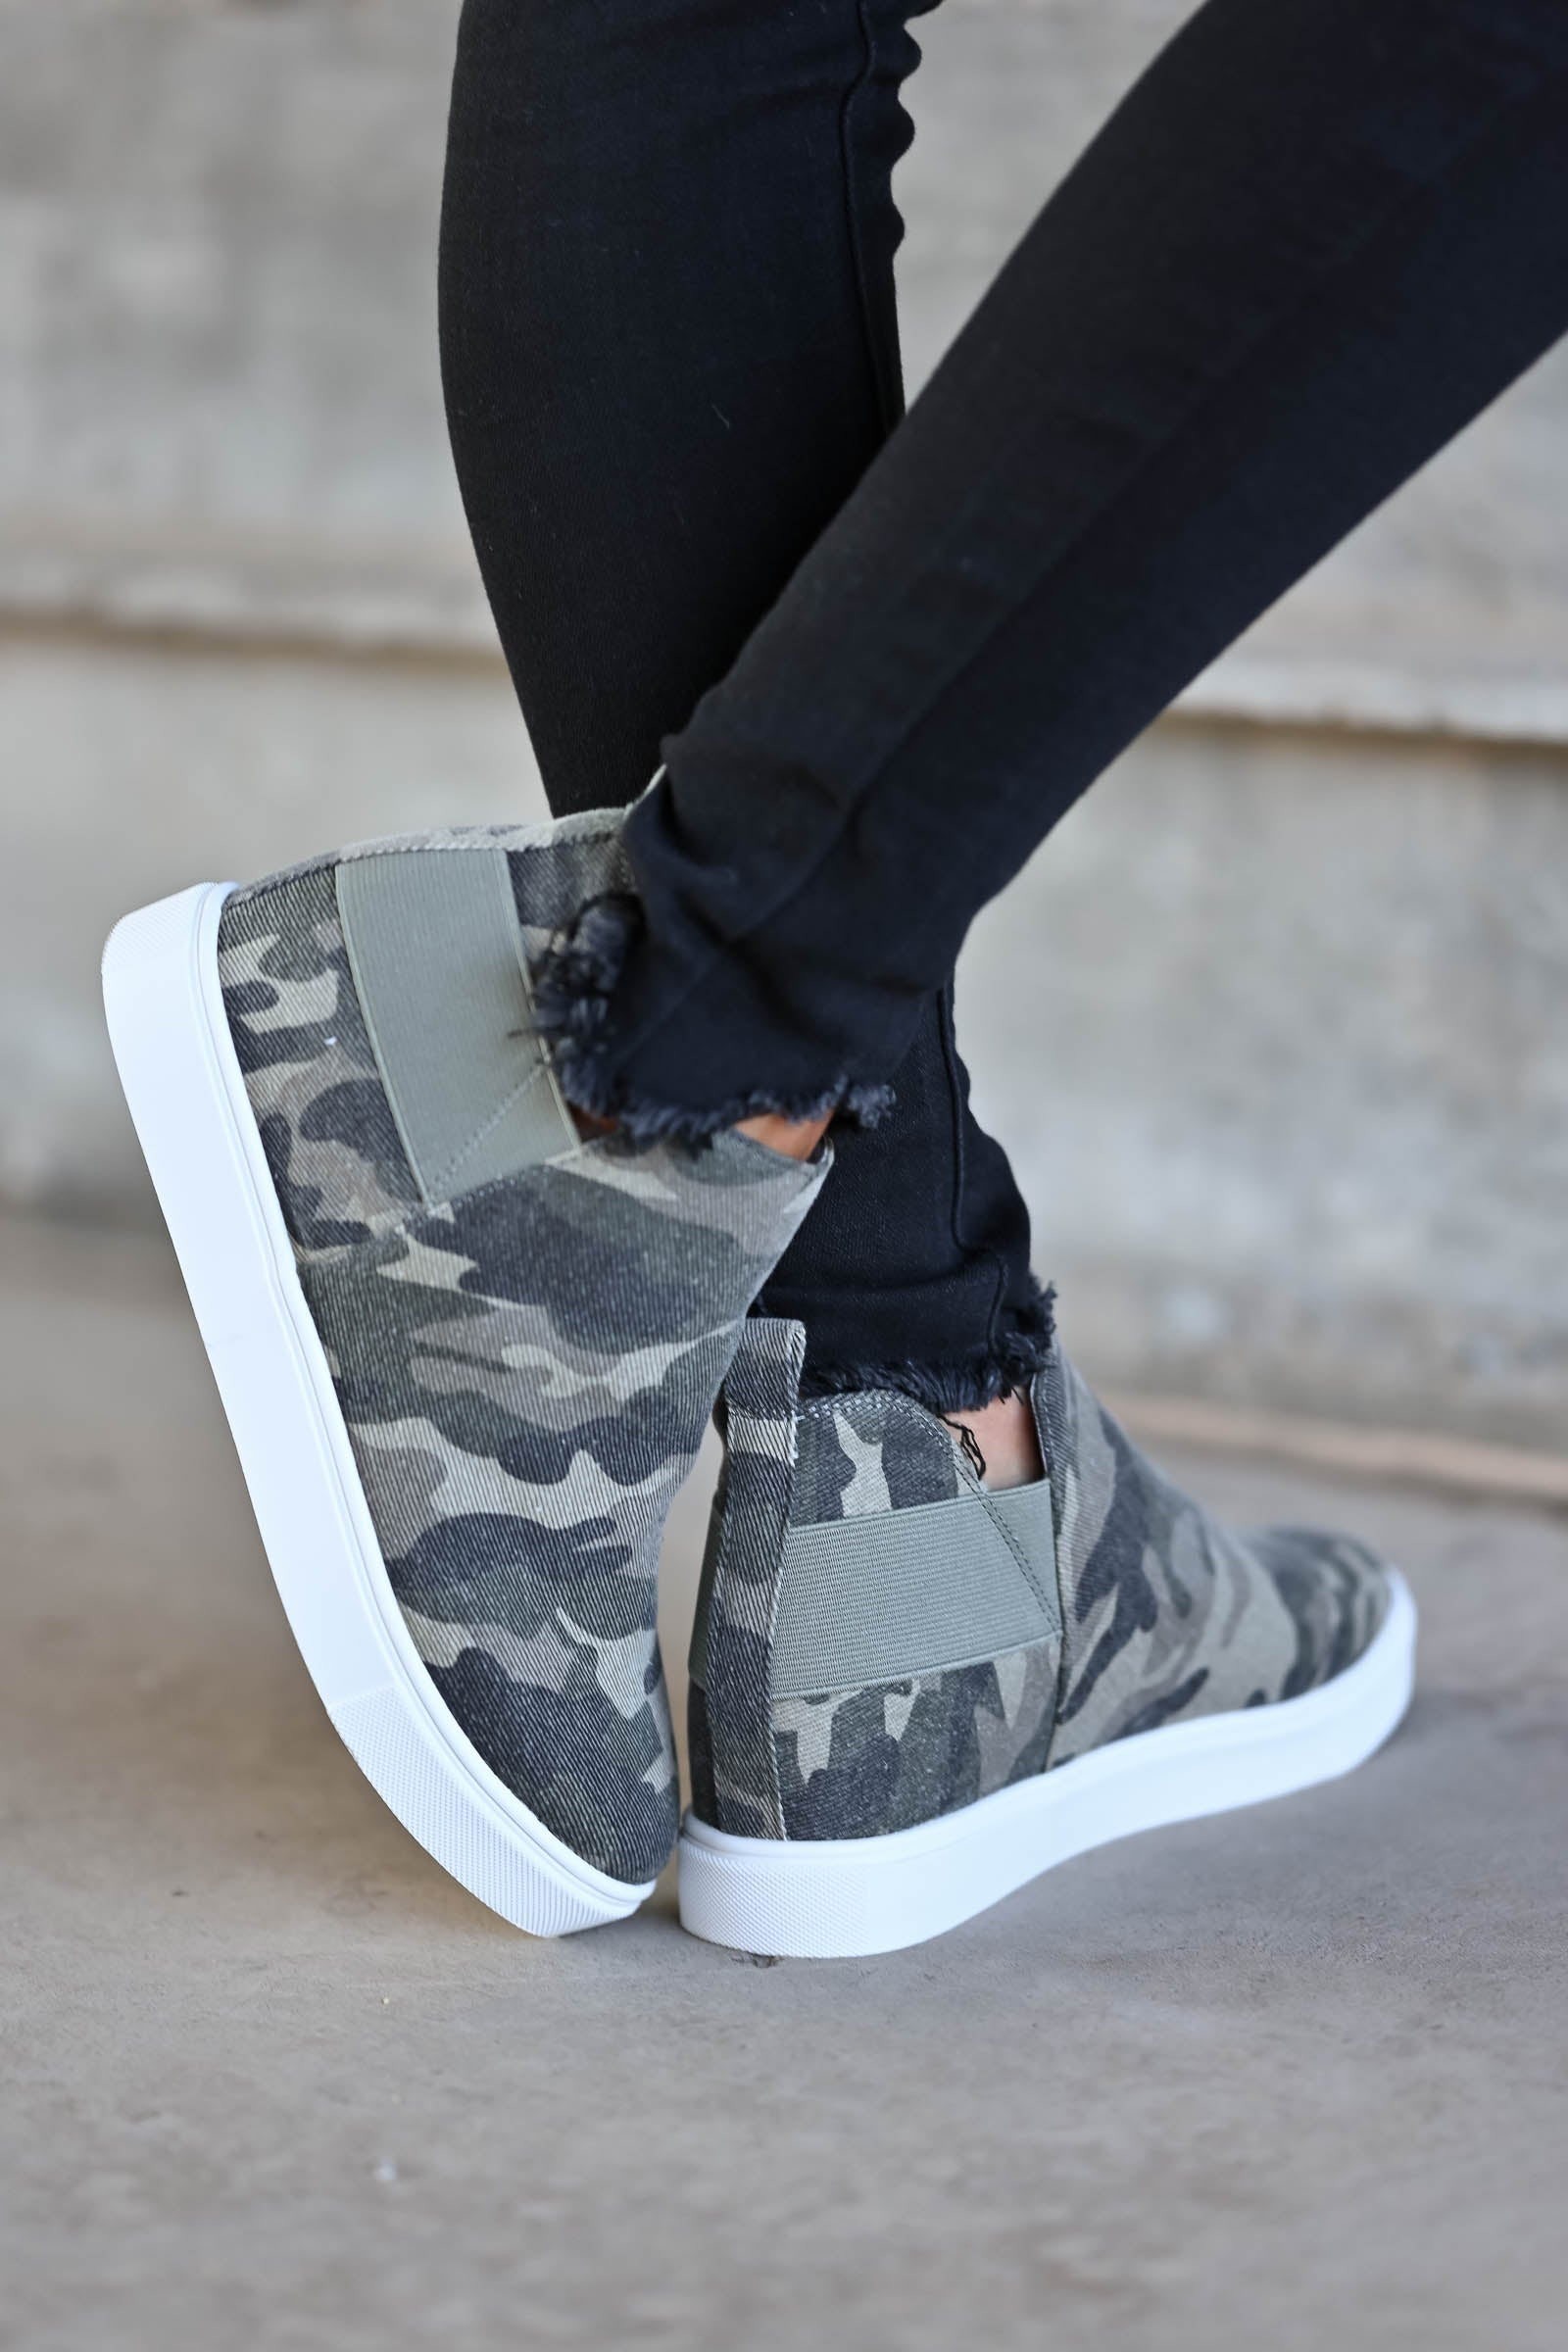 Gone For Now Wedge Sneakers - Camo omen's wedge slip-on sneakers with elastic band and cutout details at sides. A wedge sole hides under the sneaker's casual exterior, creating an ultra-flattering limb-lengthening illusion closet candy side